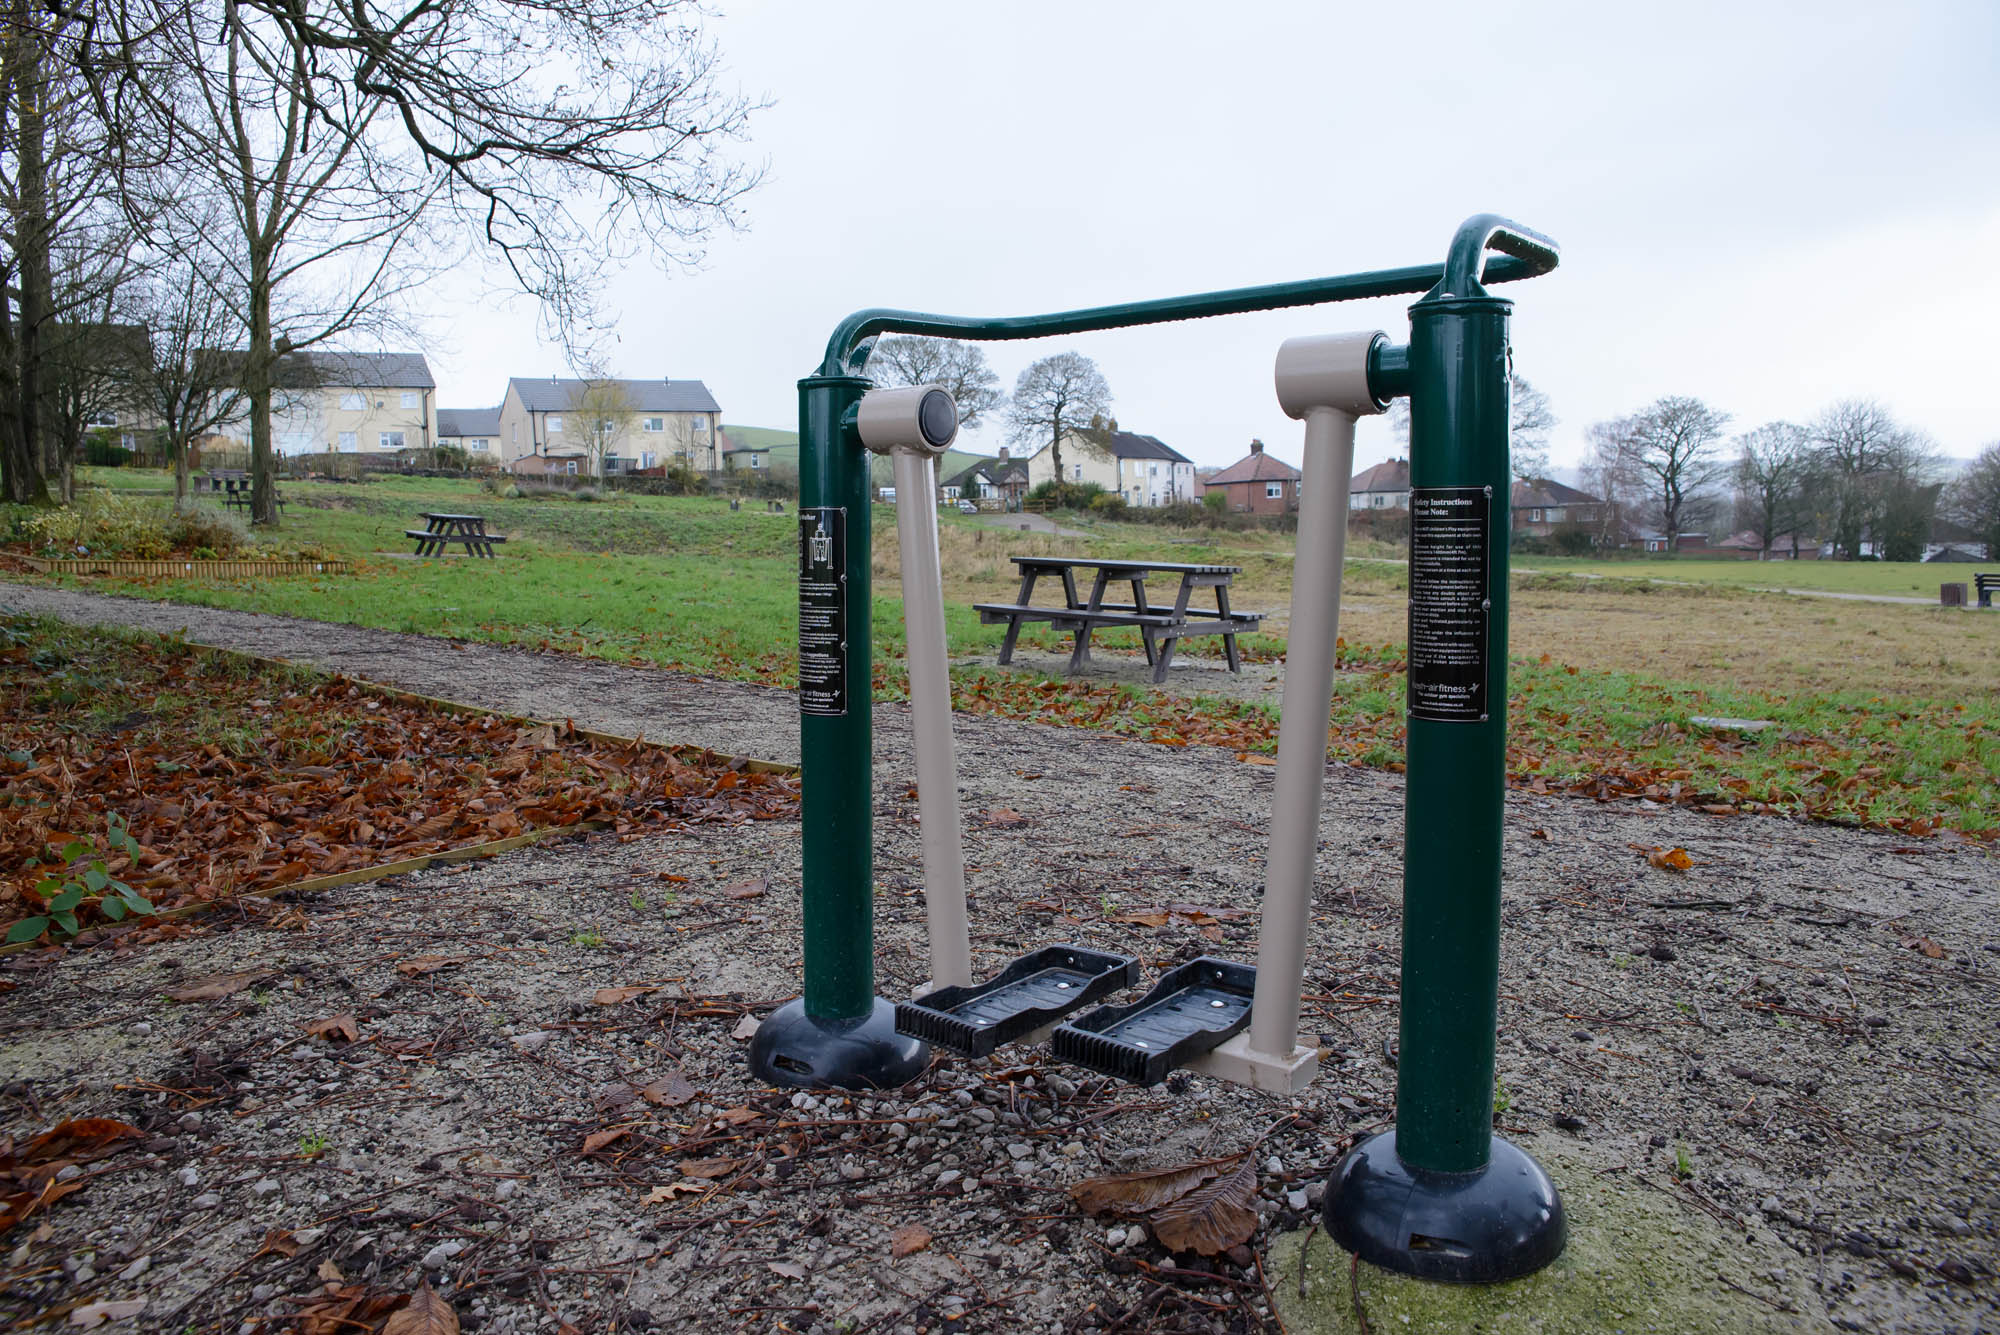 Outdoor gym facilities at Furness Vale